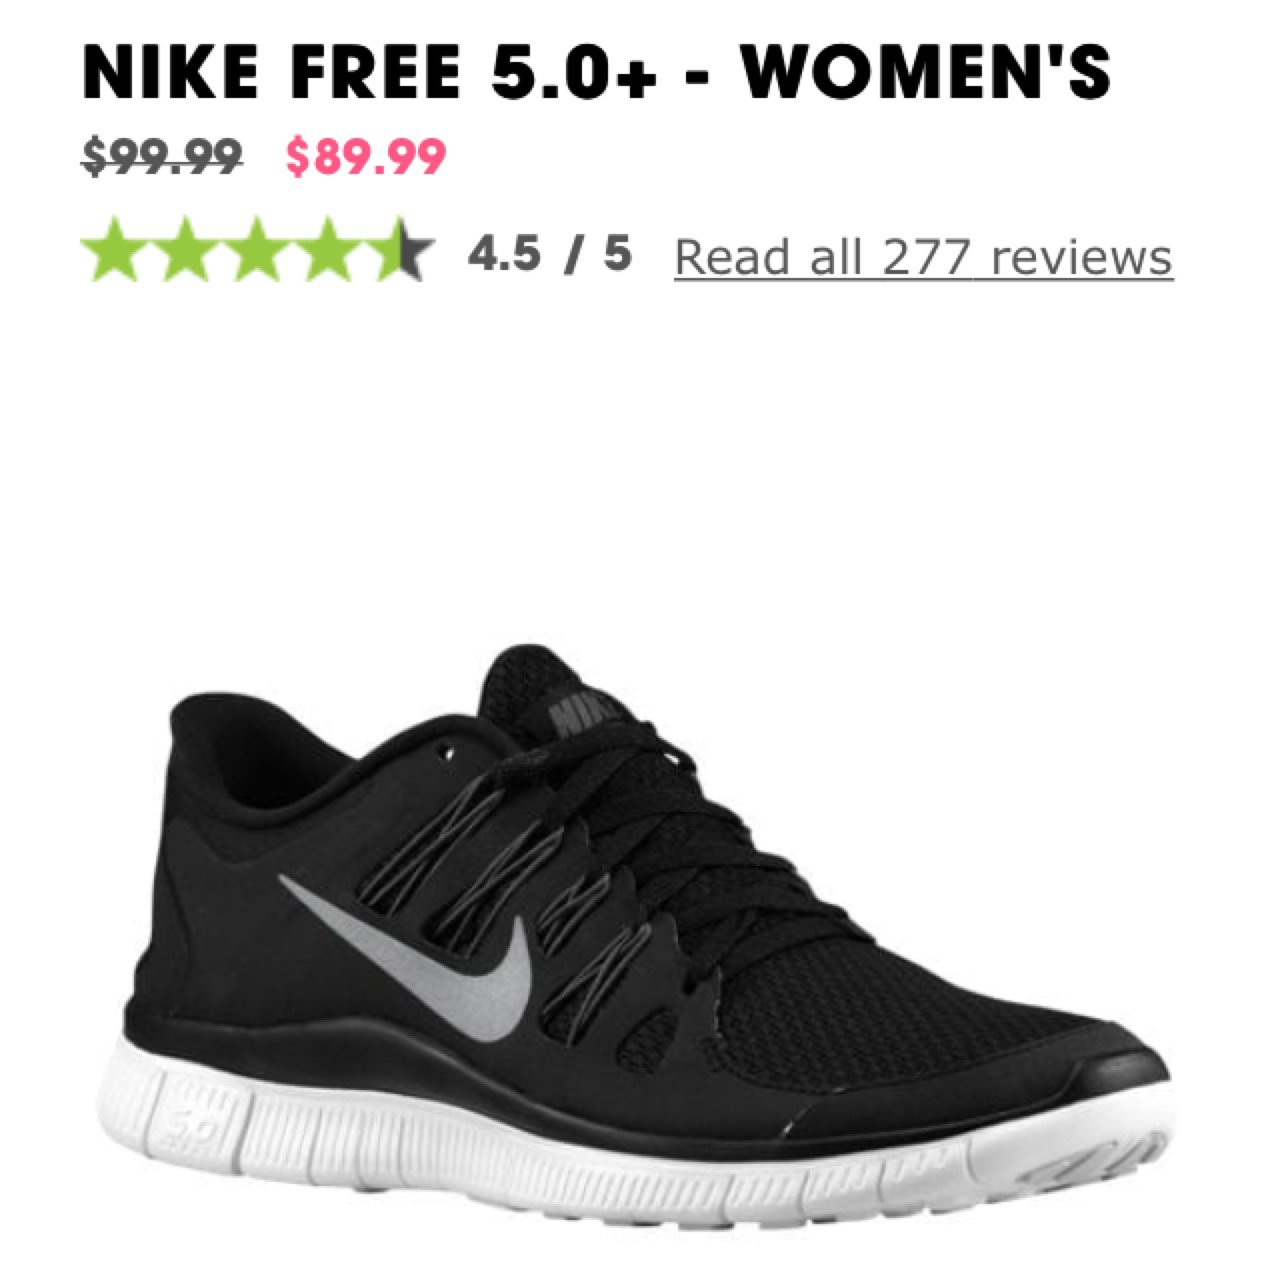 72956fa756e4 Nike free 5.0+ women s running shoes